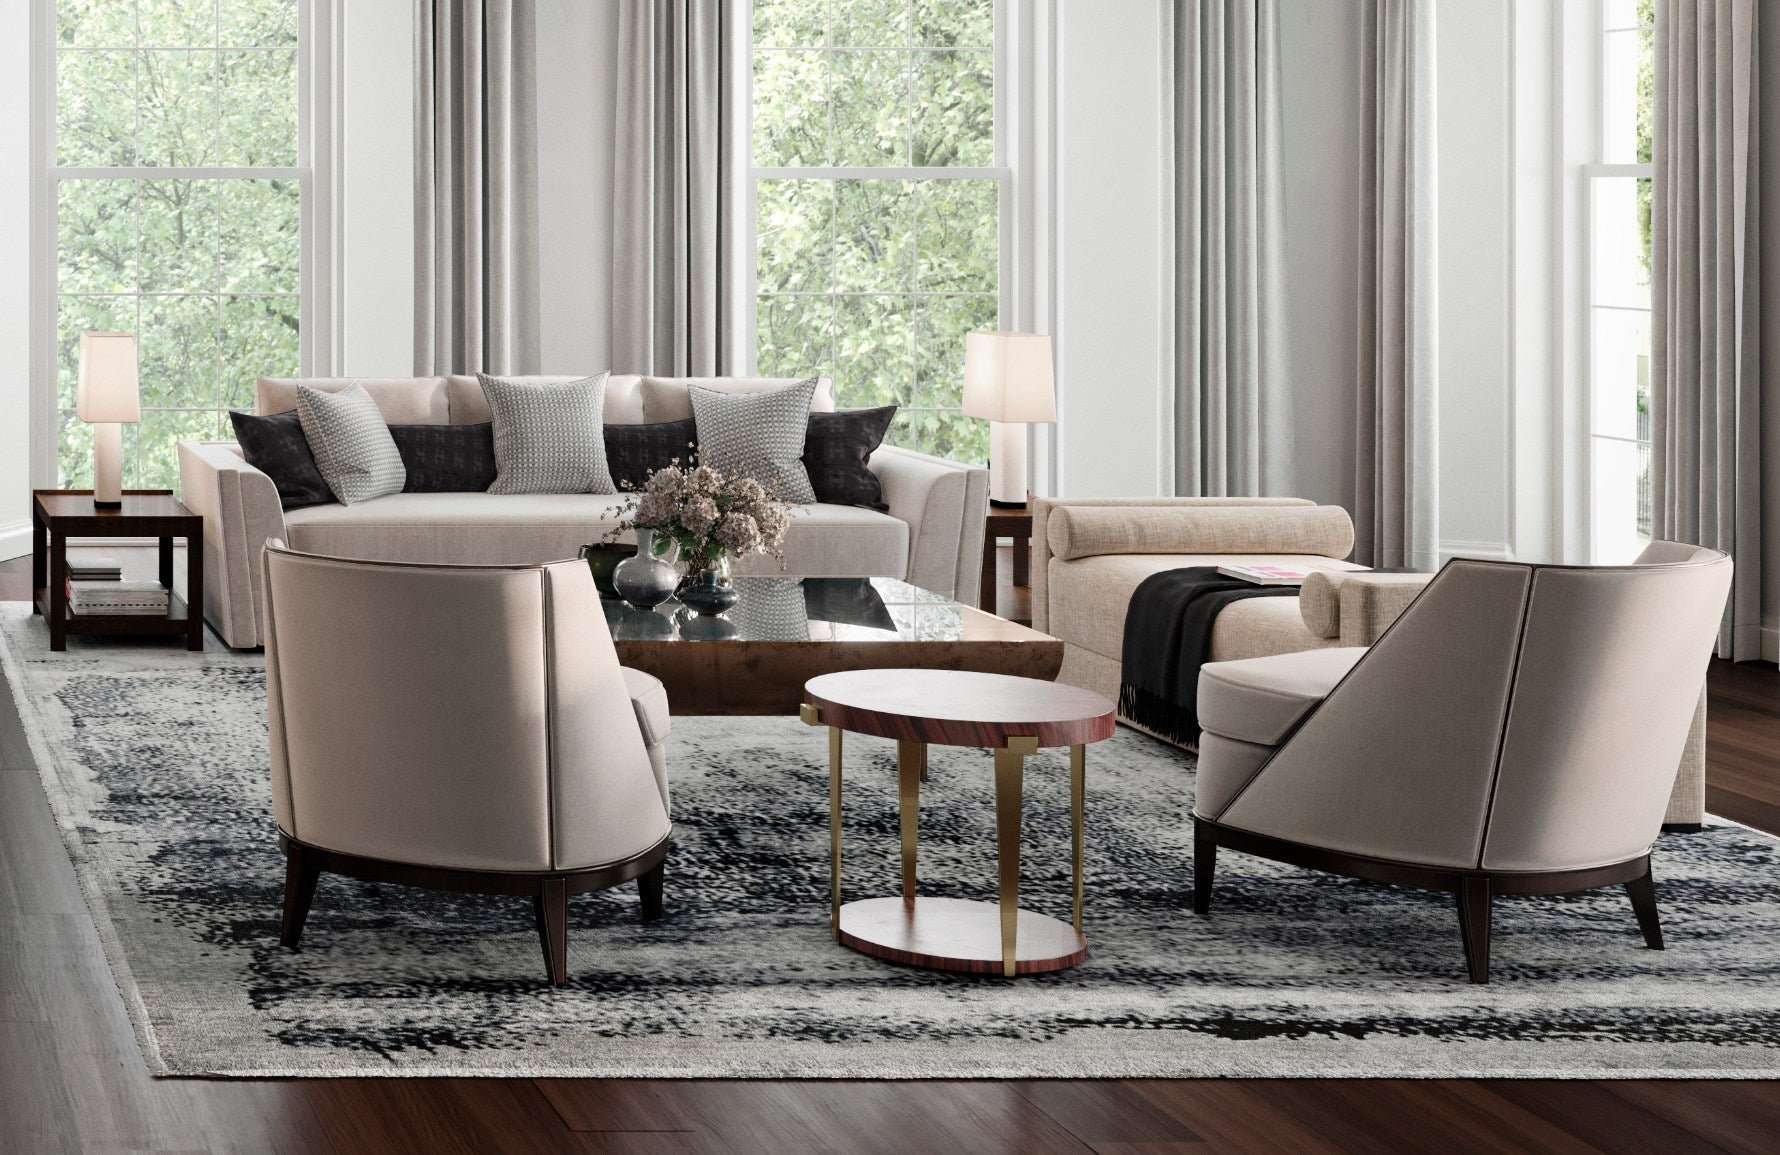 How To Style Your Sofa Cushions – Alternating patterns cushion arrangement – Shop Luxury Cushions at LuxDeco.com